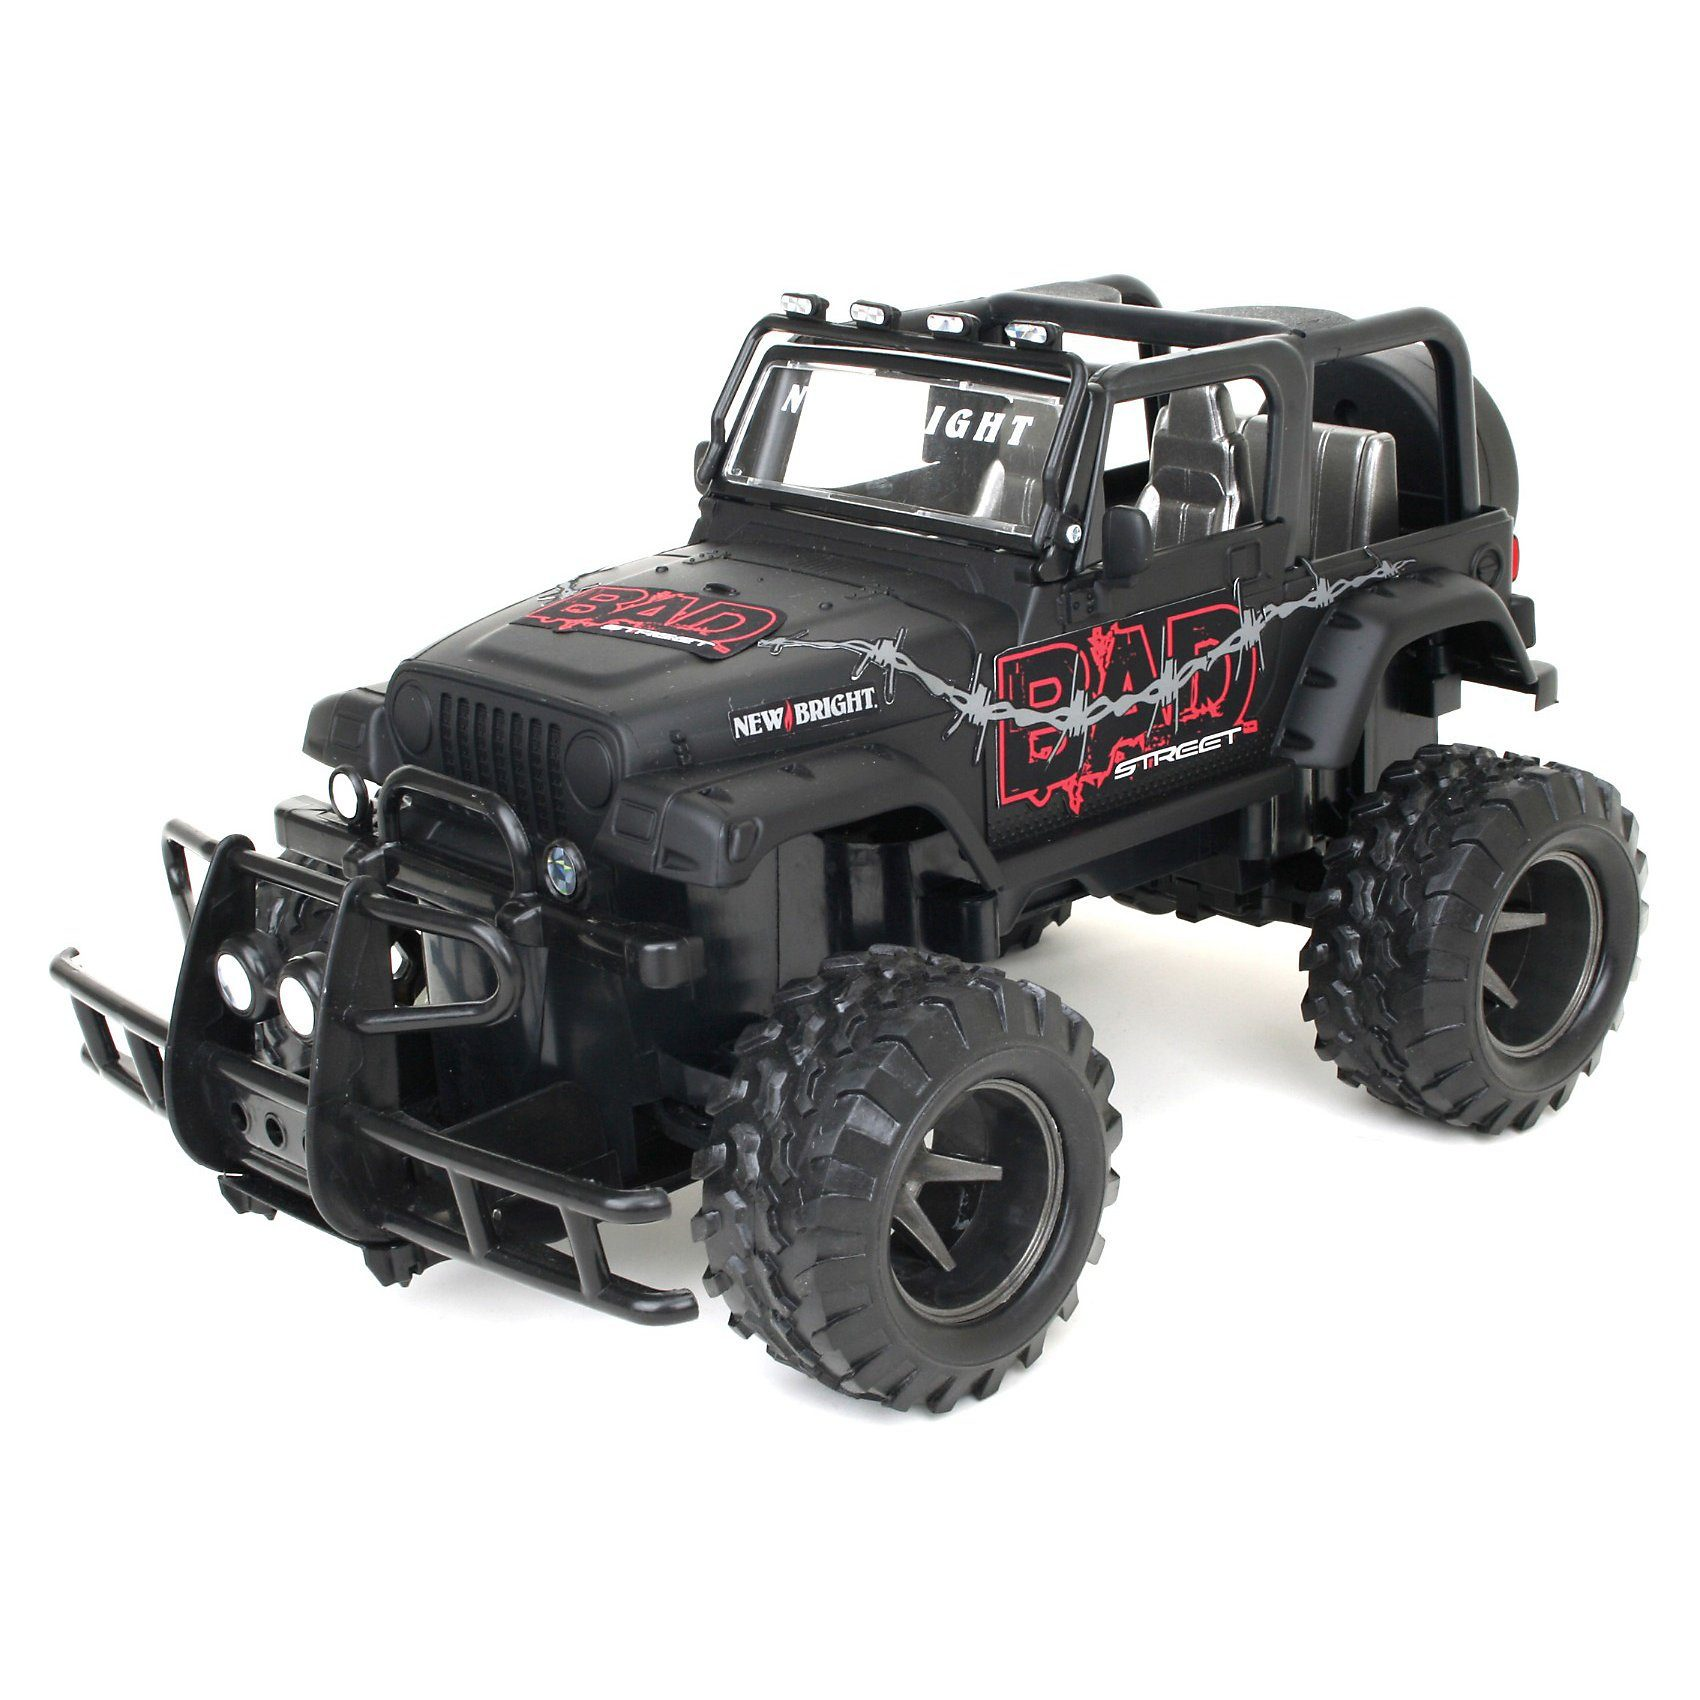 New Bright RC - Bad Street Jeep Wrangler 1:15